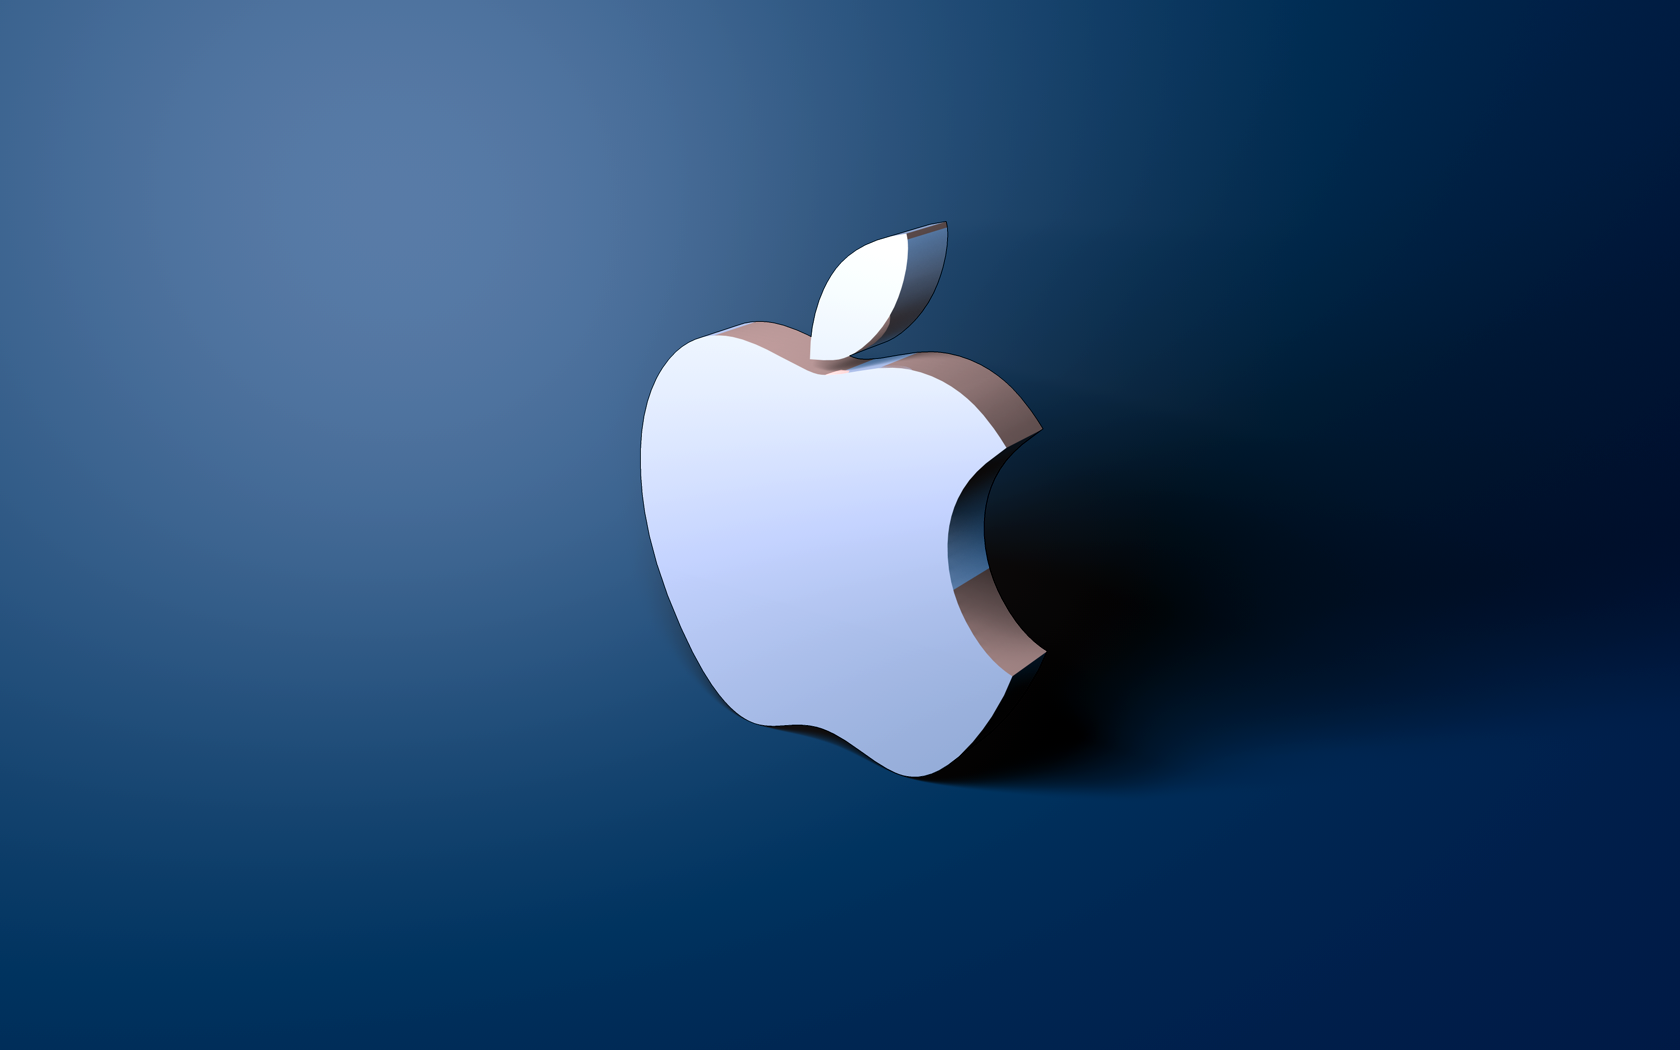 apple ipod hd wallpaper | download cool hd wallpapers here.